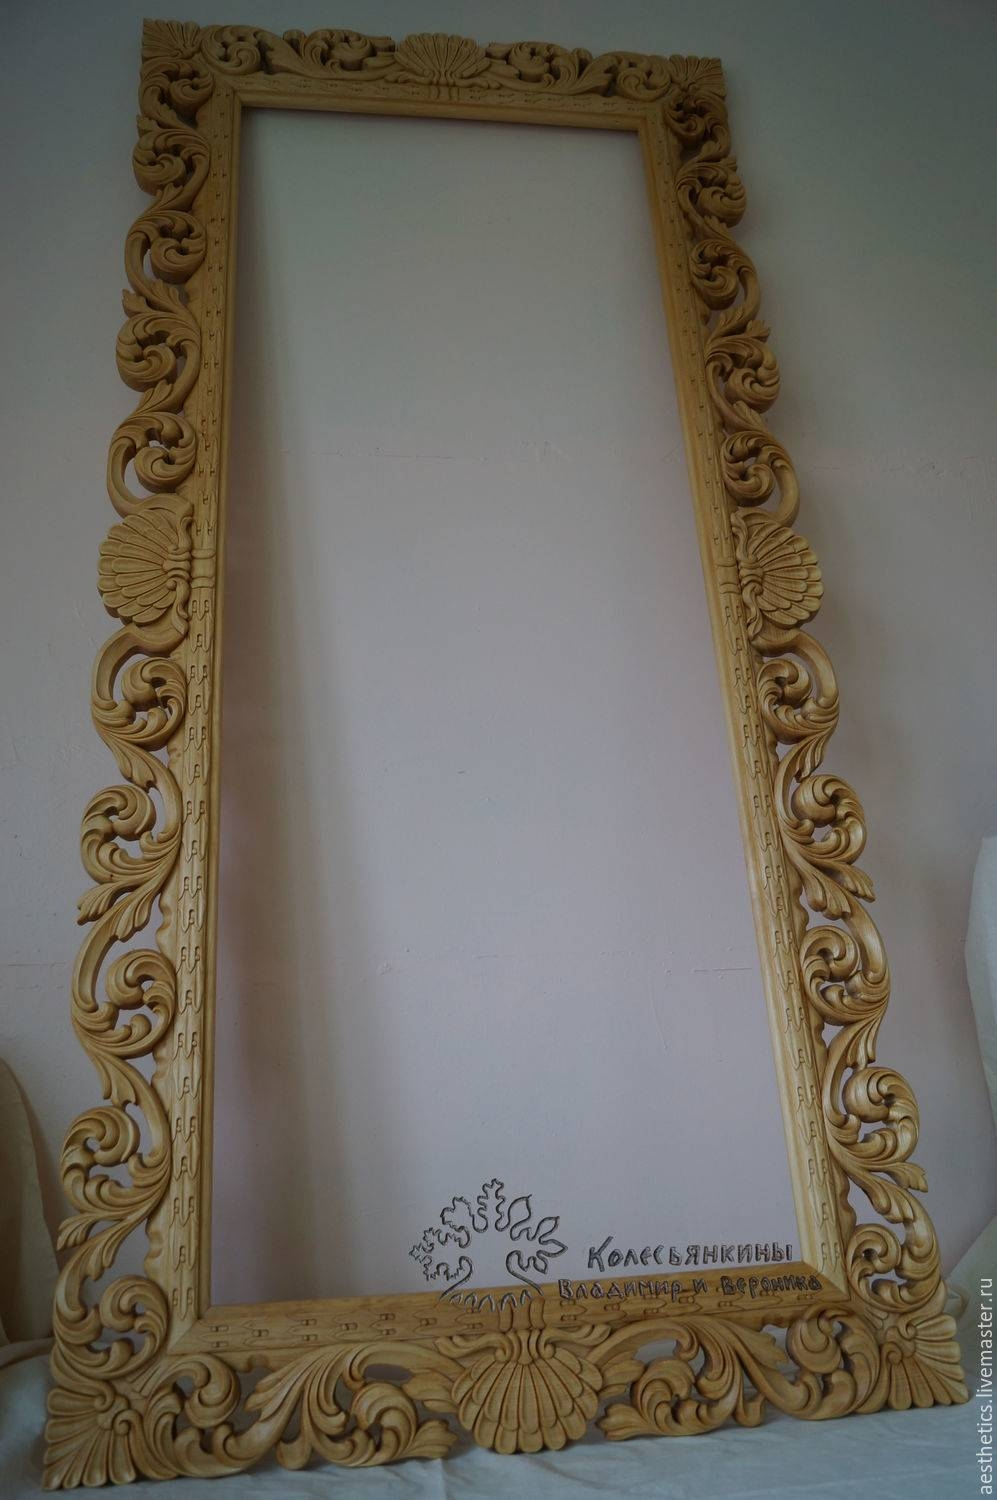 Baroque Picture Frames Large - Best Frames 2017 with regard to Large Baroque Mirrors (Image 7 of 25)